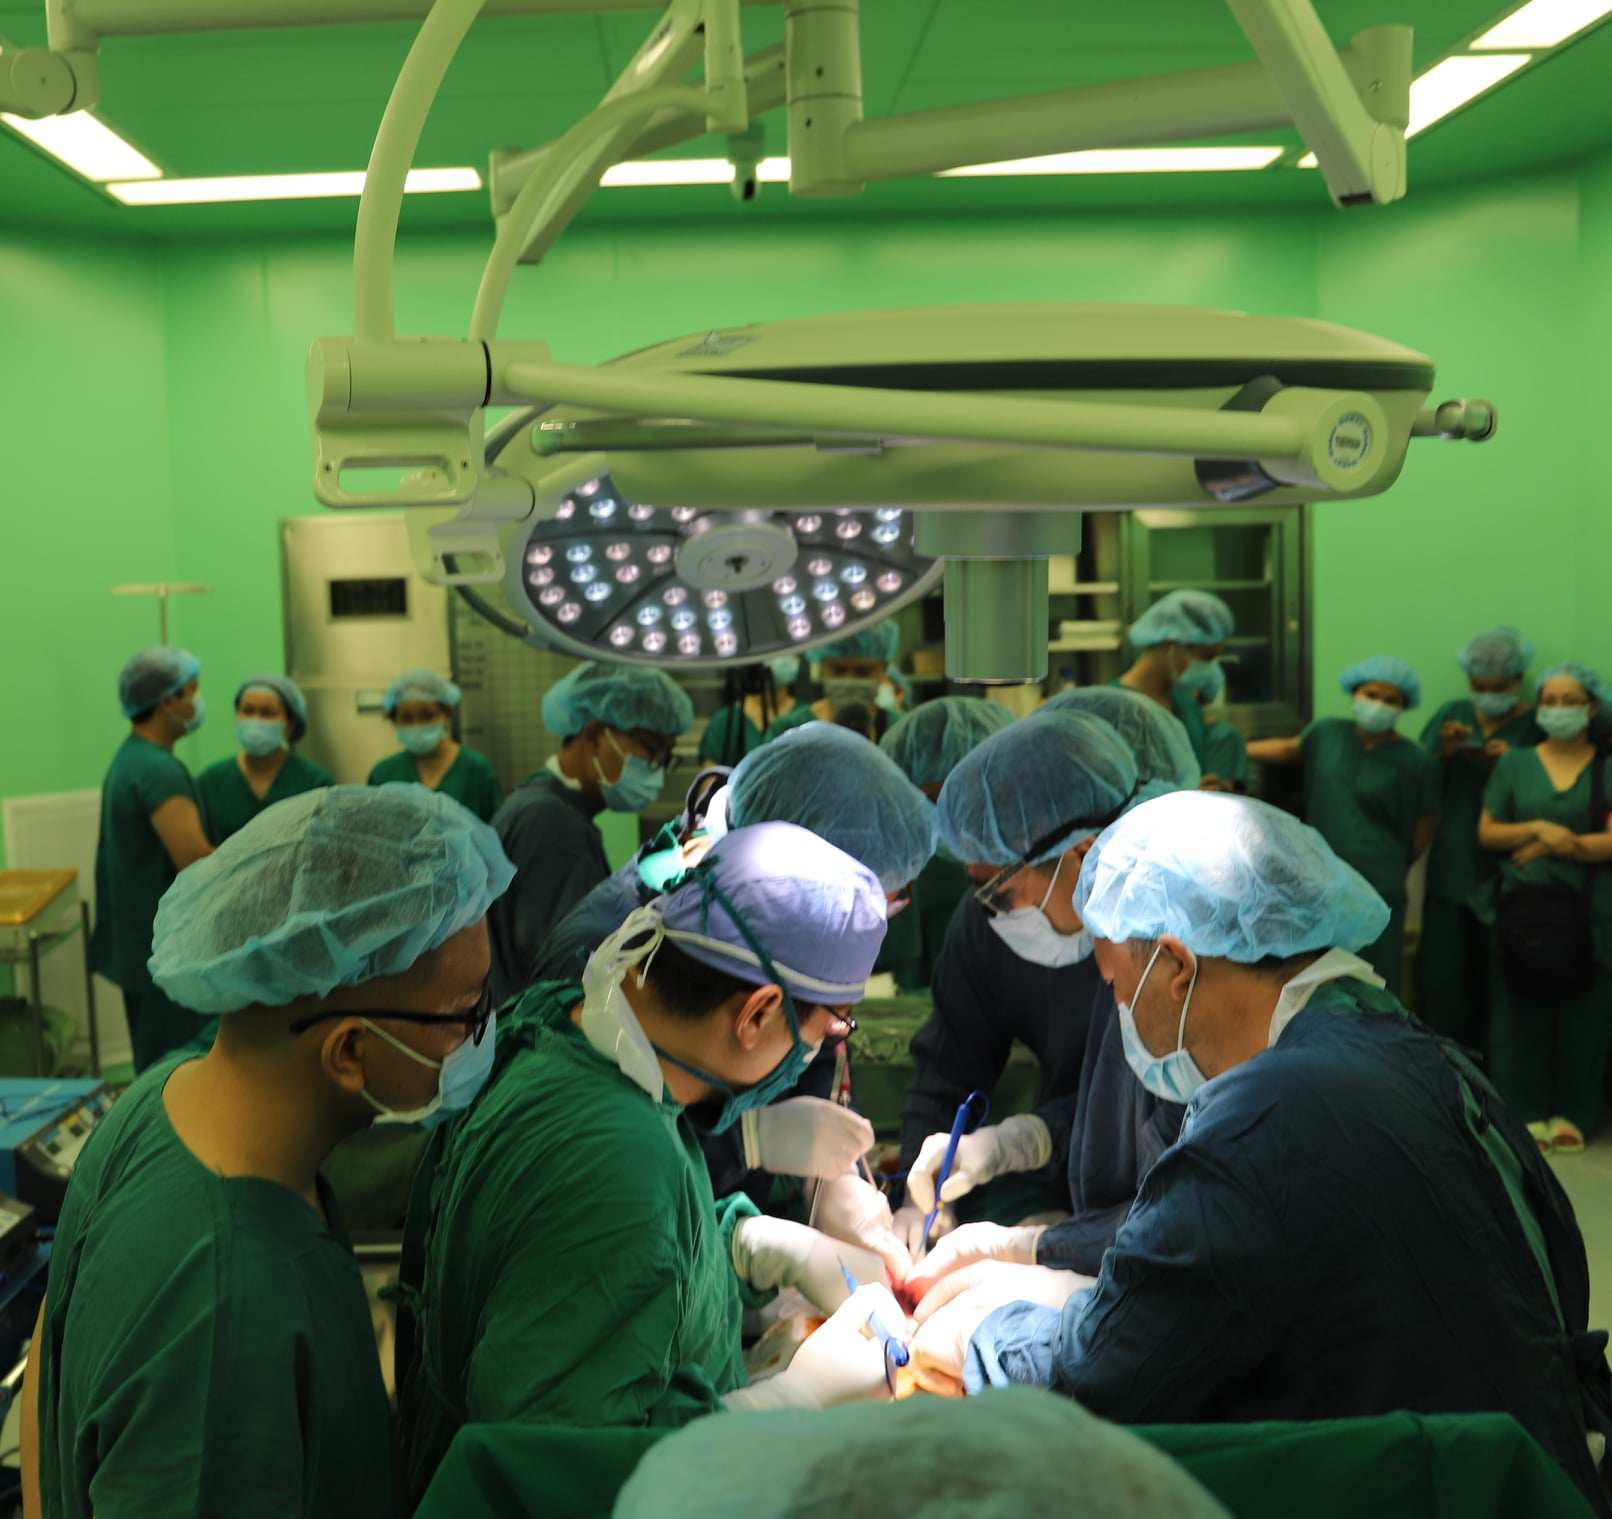 doctors taking organ from donor